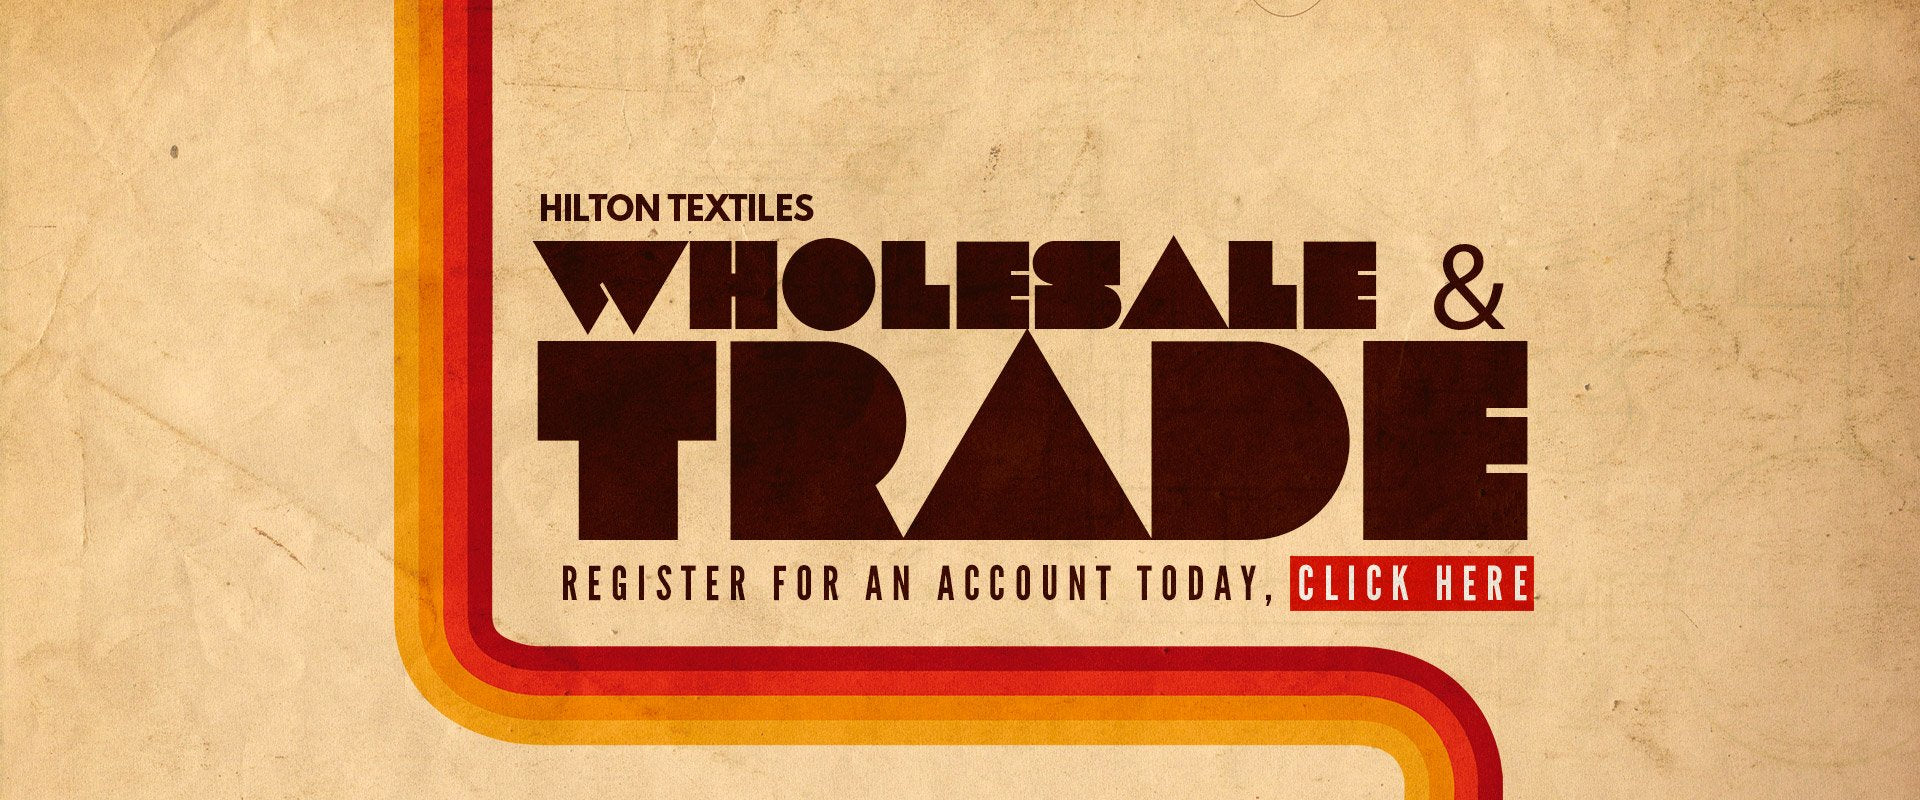 Register for wholesale account with hilton textiles today